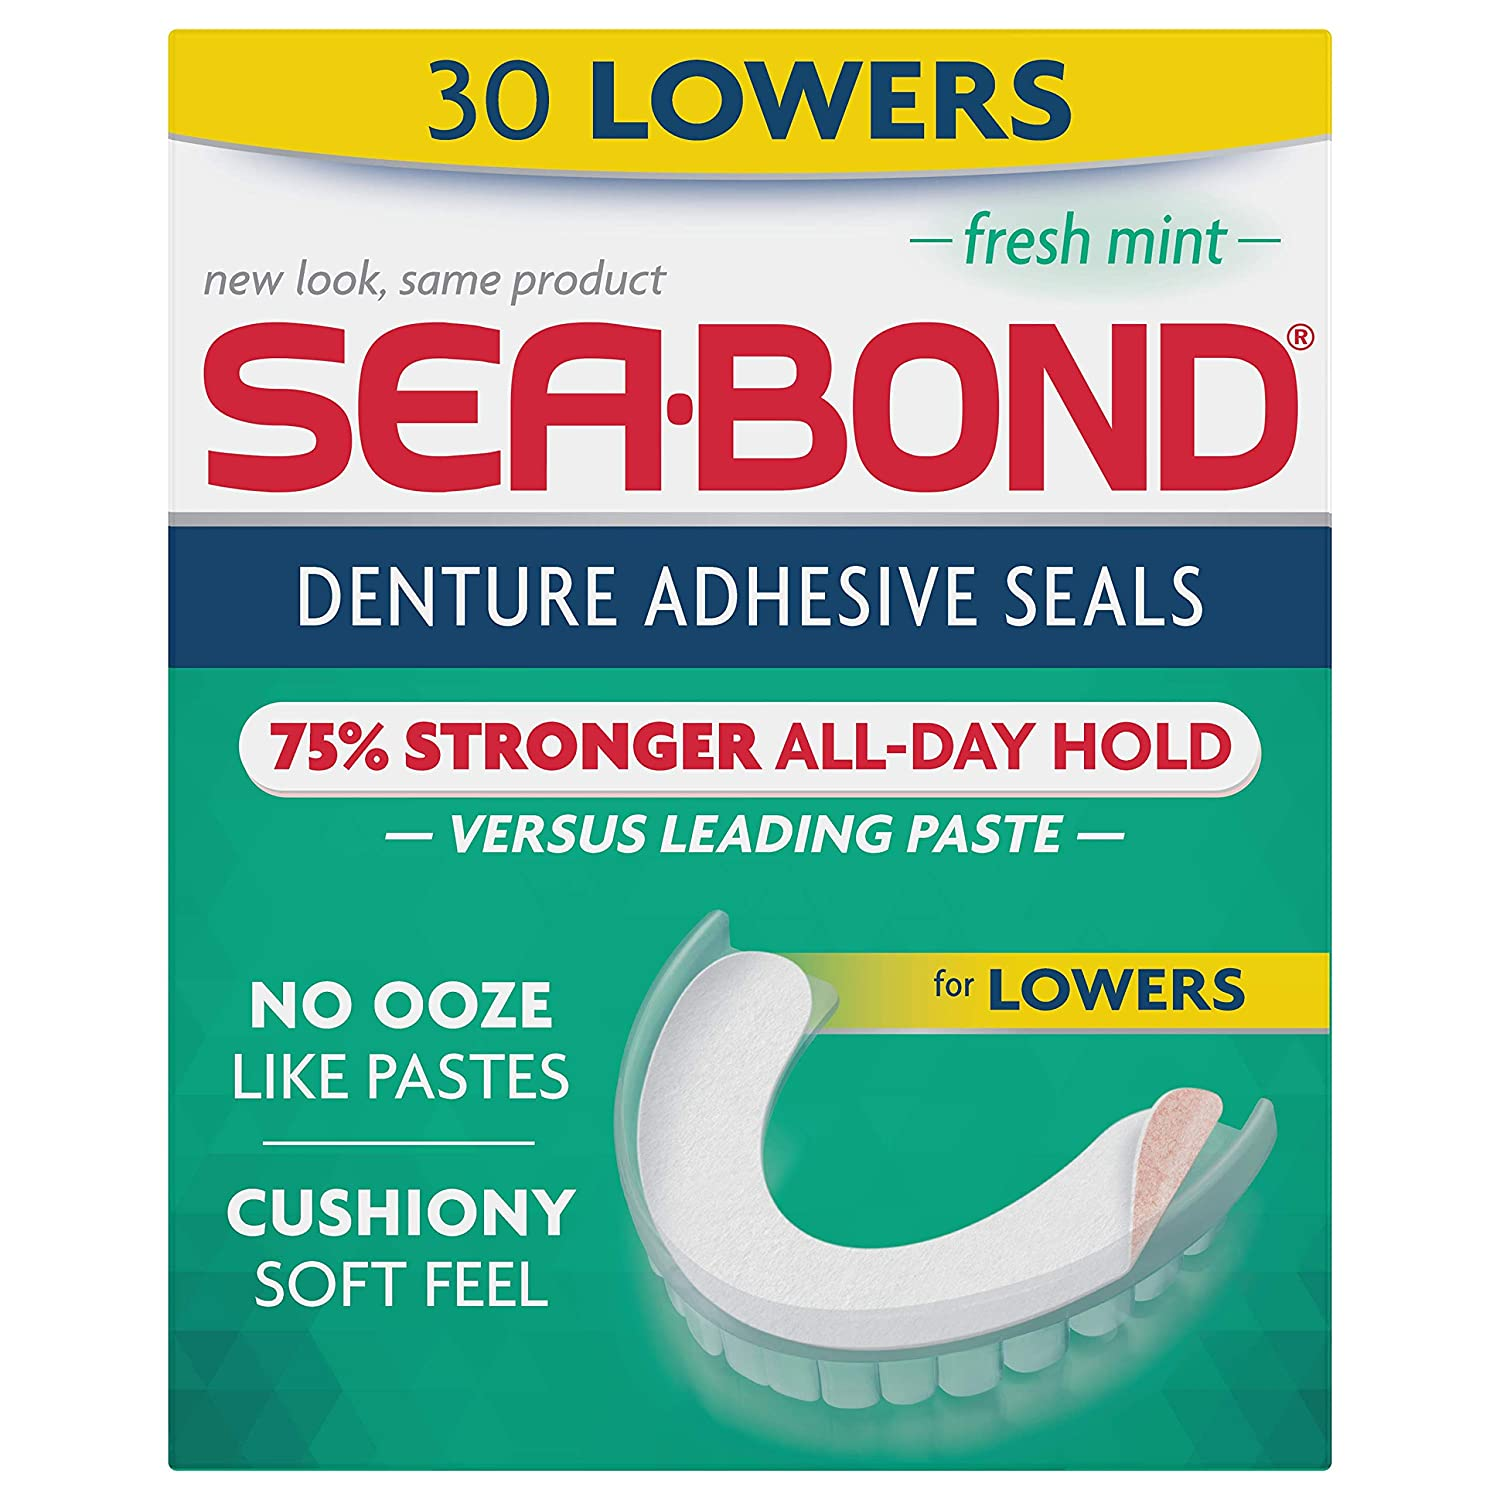 Sea Bond Secure Denture Adhesive Seals, Fresh Mint Lowers, 30 Count Sea-Bond 011509065087